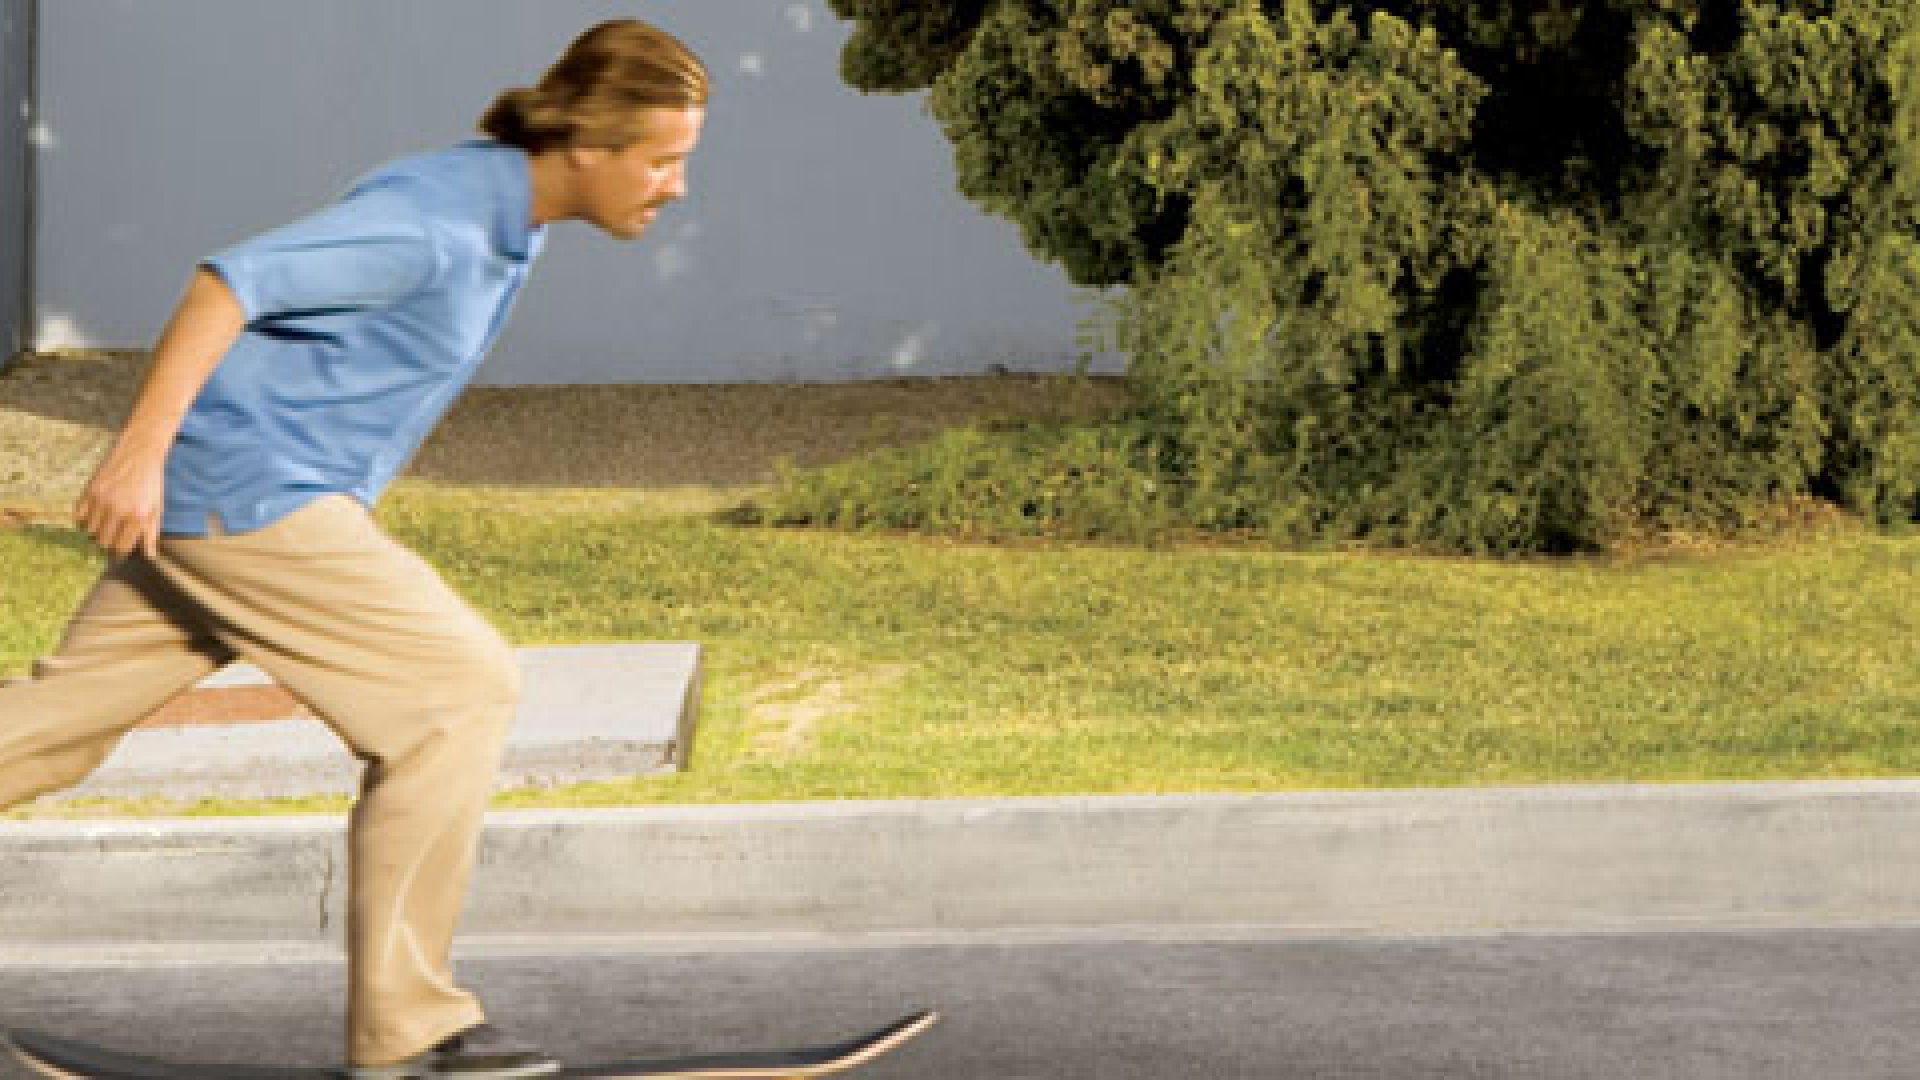 <strong>STREET SURFER</strong> That's no ordinary skateboard Michael Kern is riding. The Flowboard has 14 wheels and simulates the feel of a surfboard.